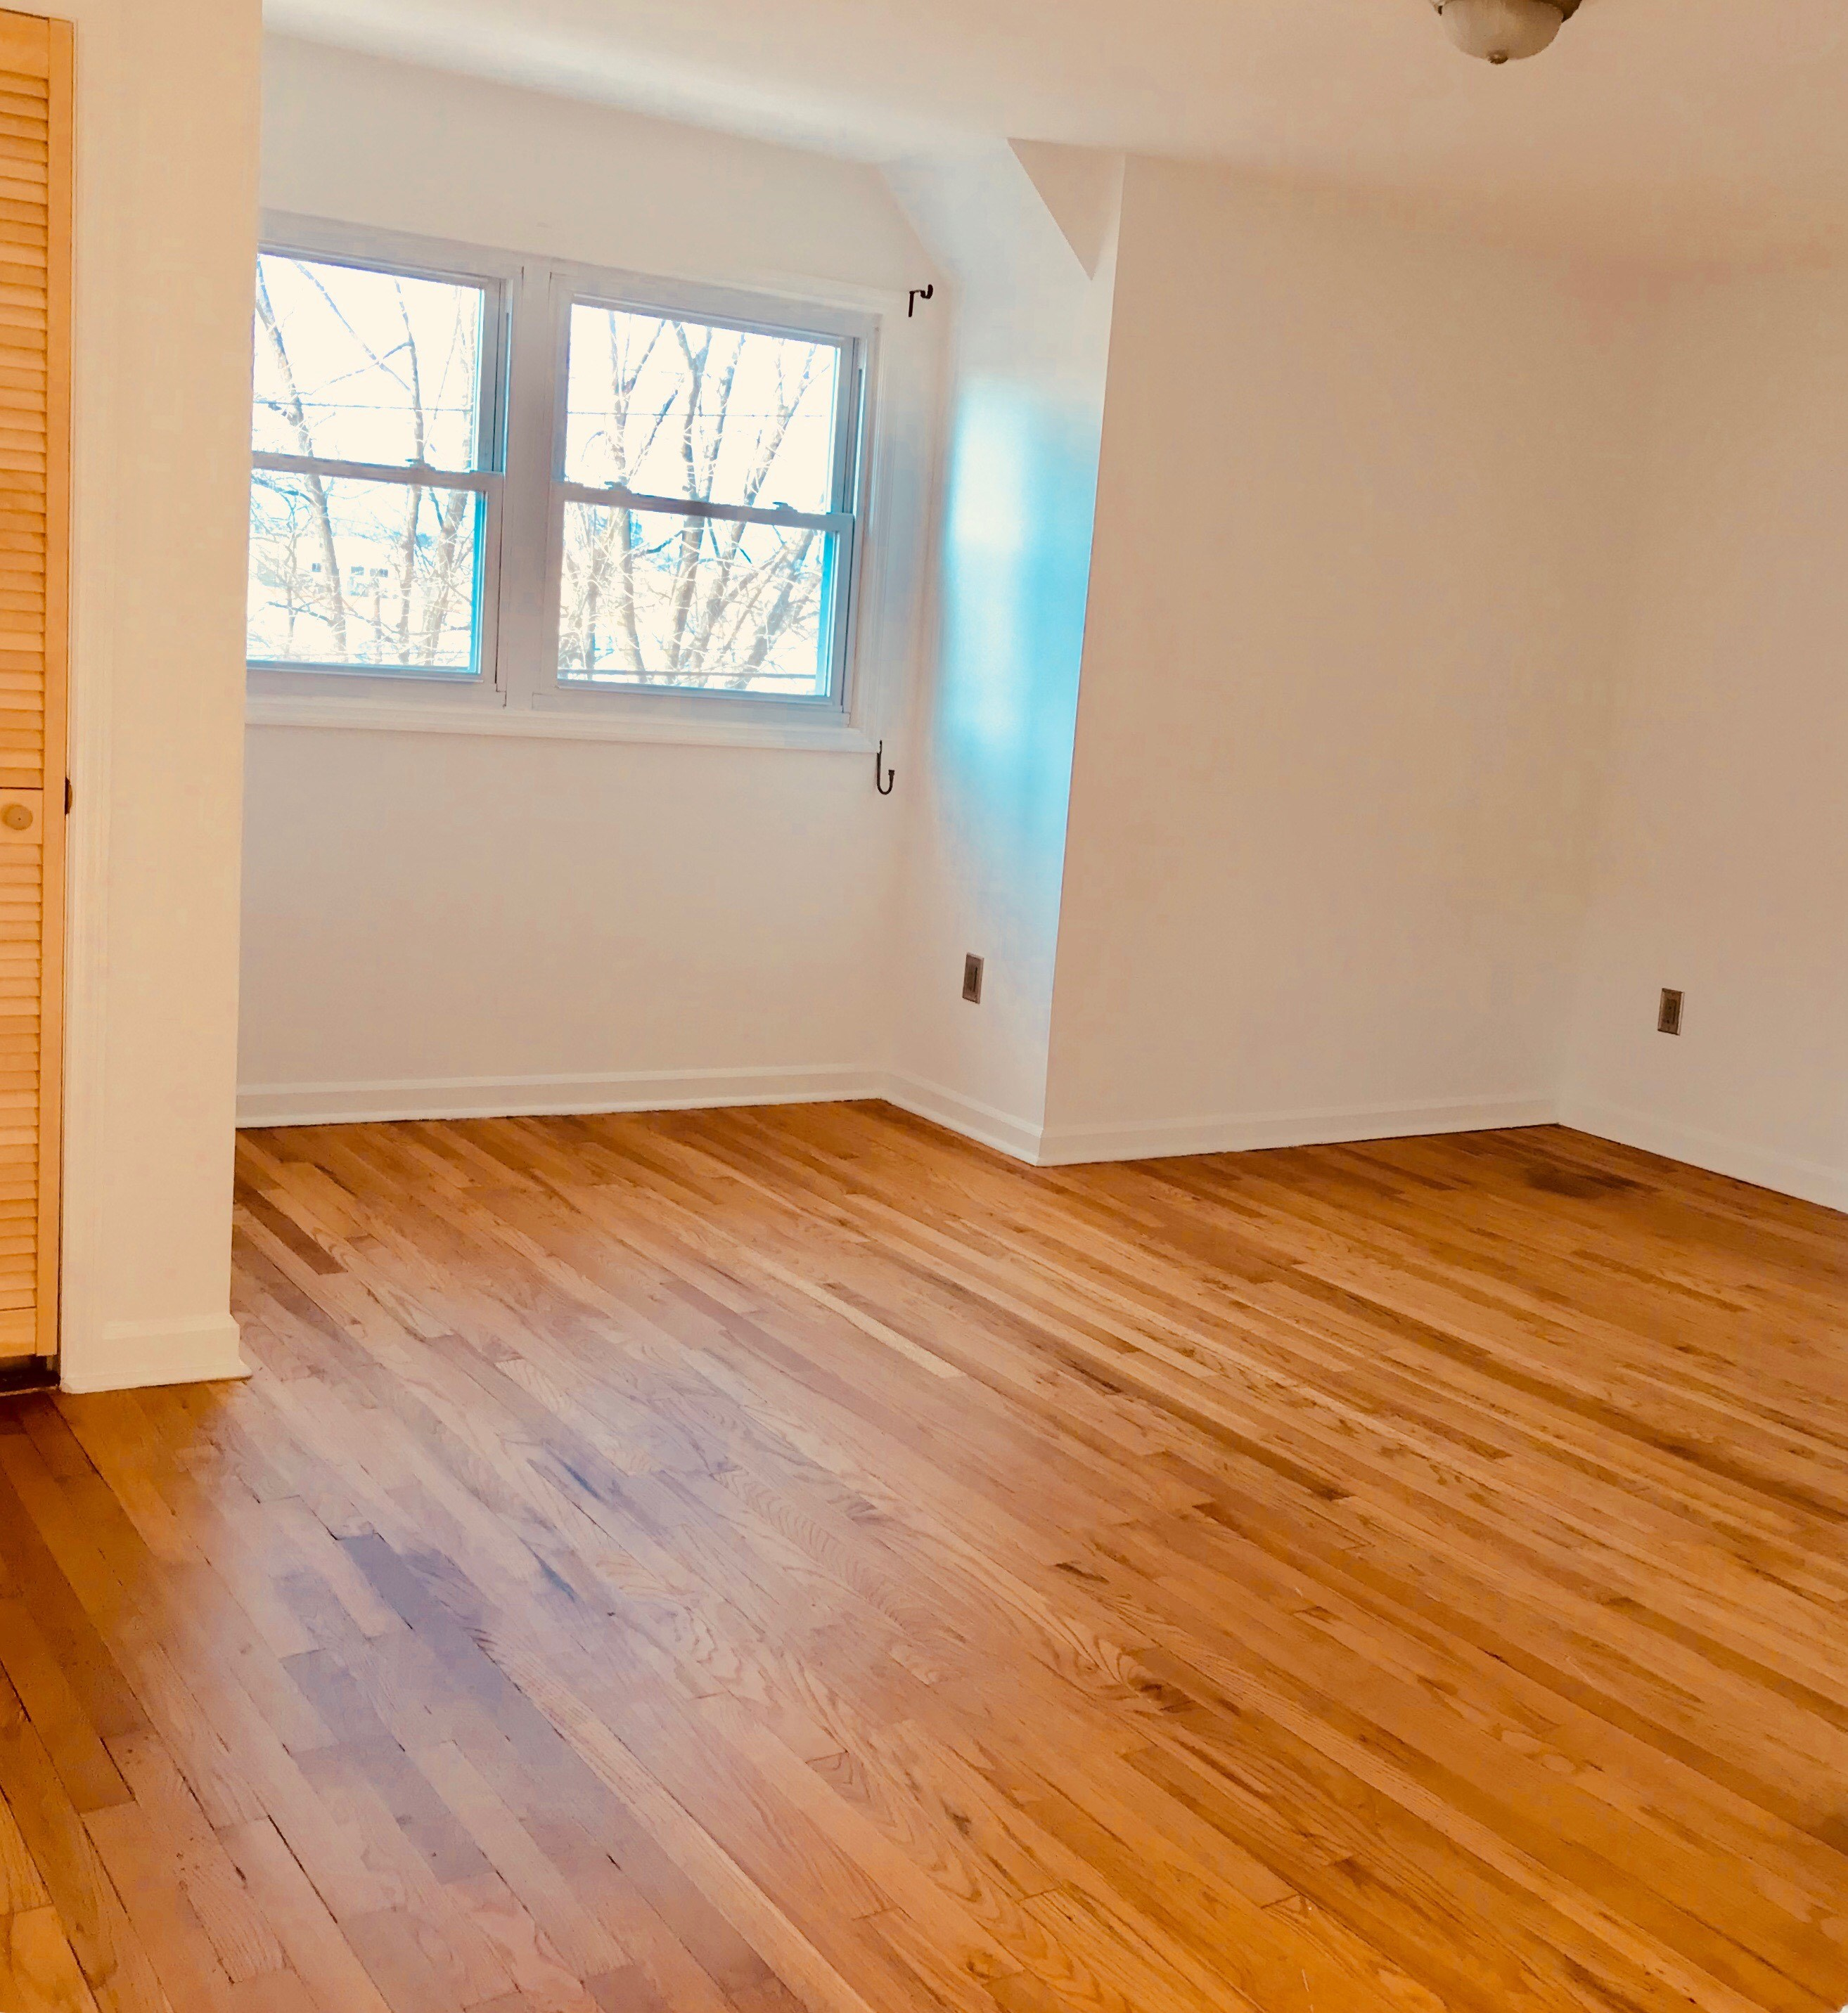 Apartments In New Jersey Zillow: One Bedroom Apartment In Jersey City Heights